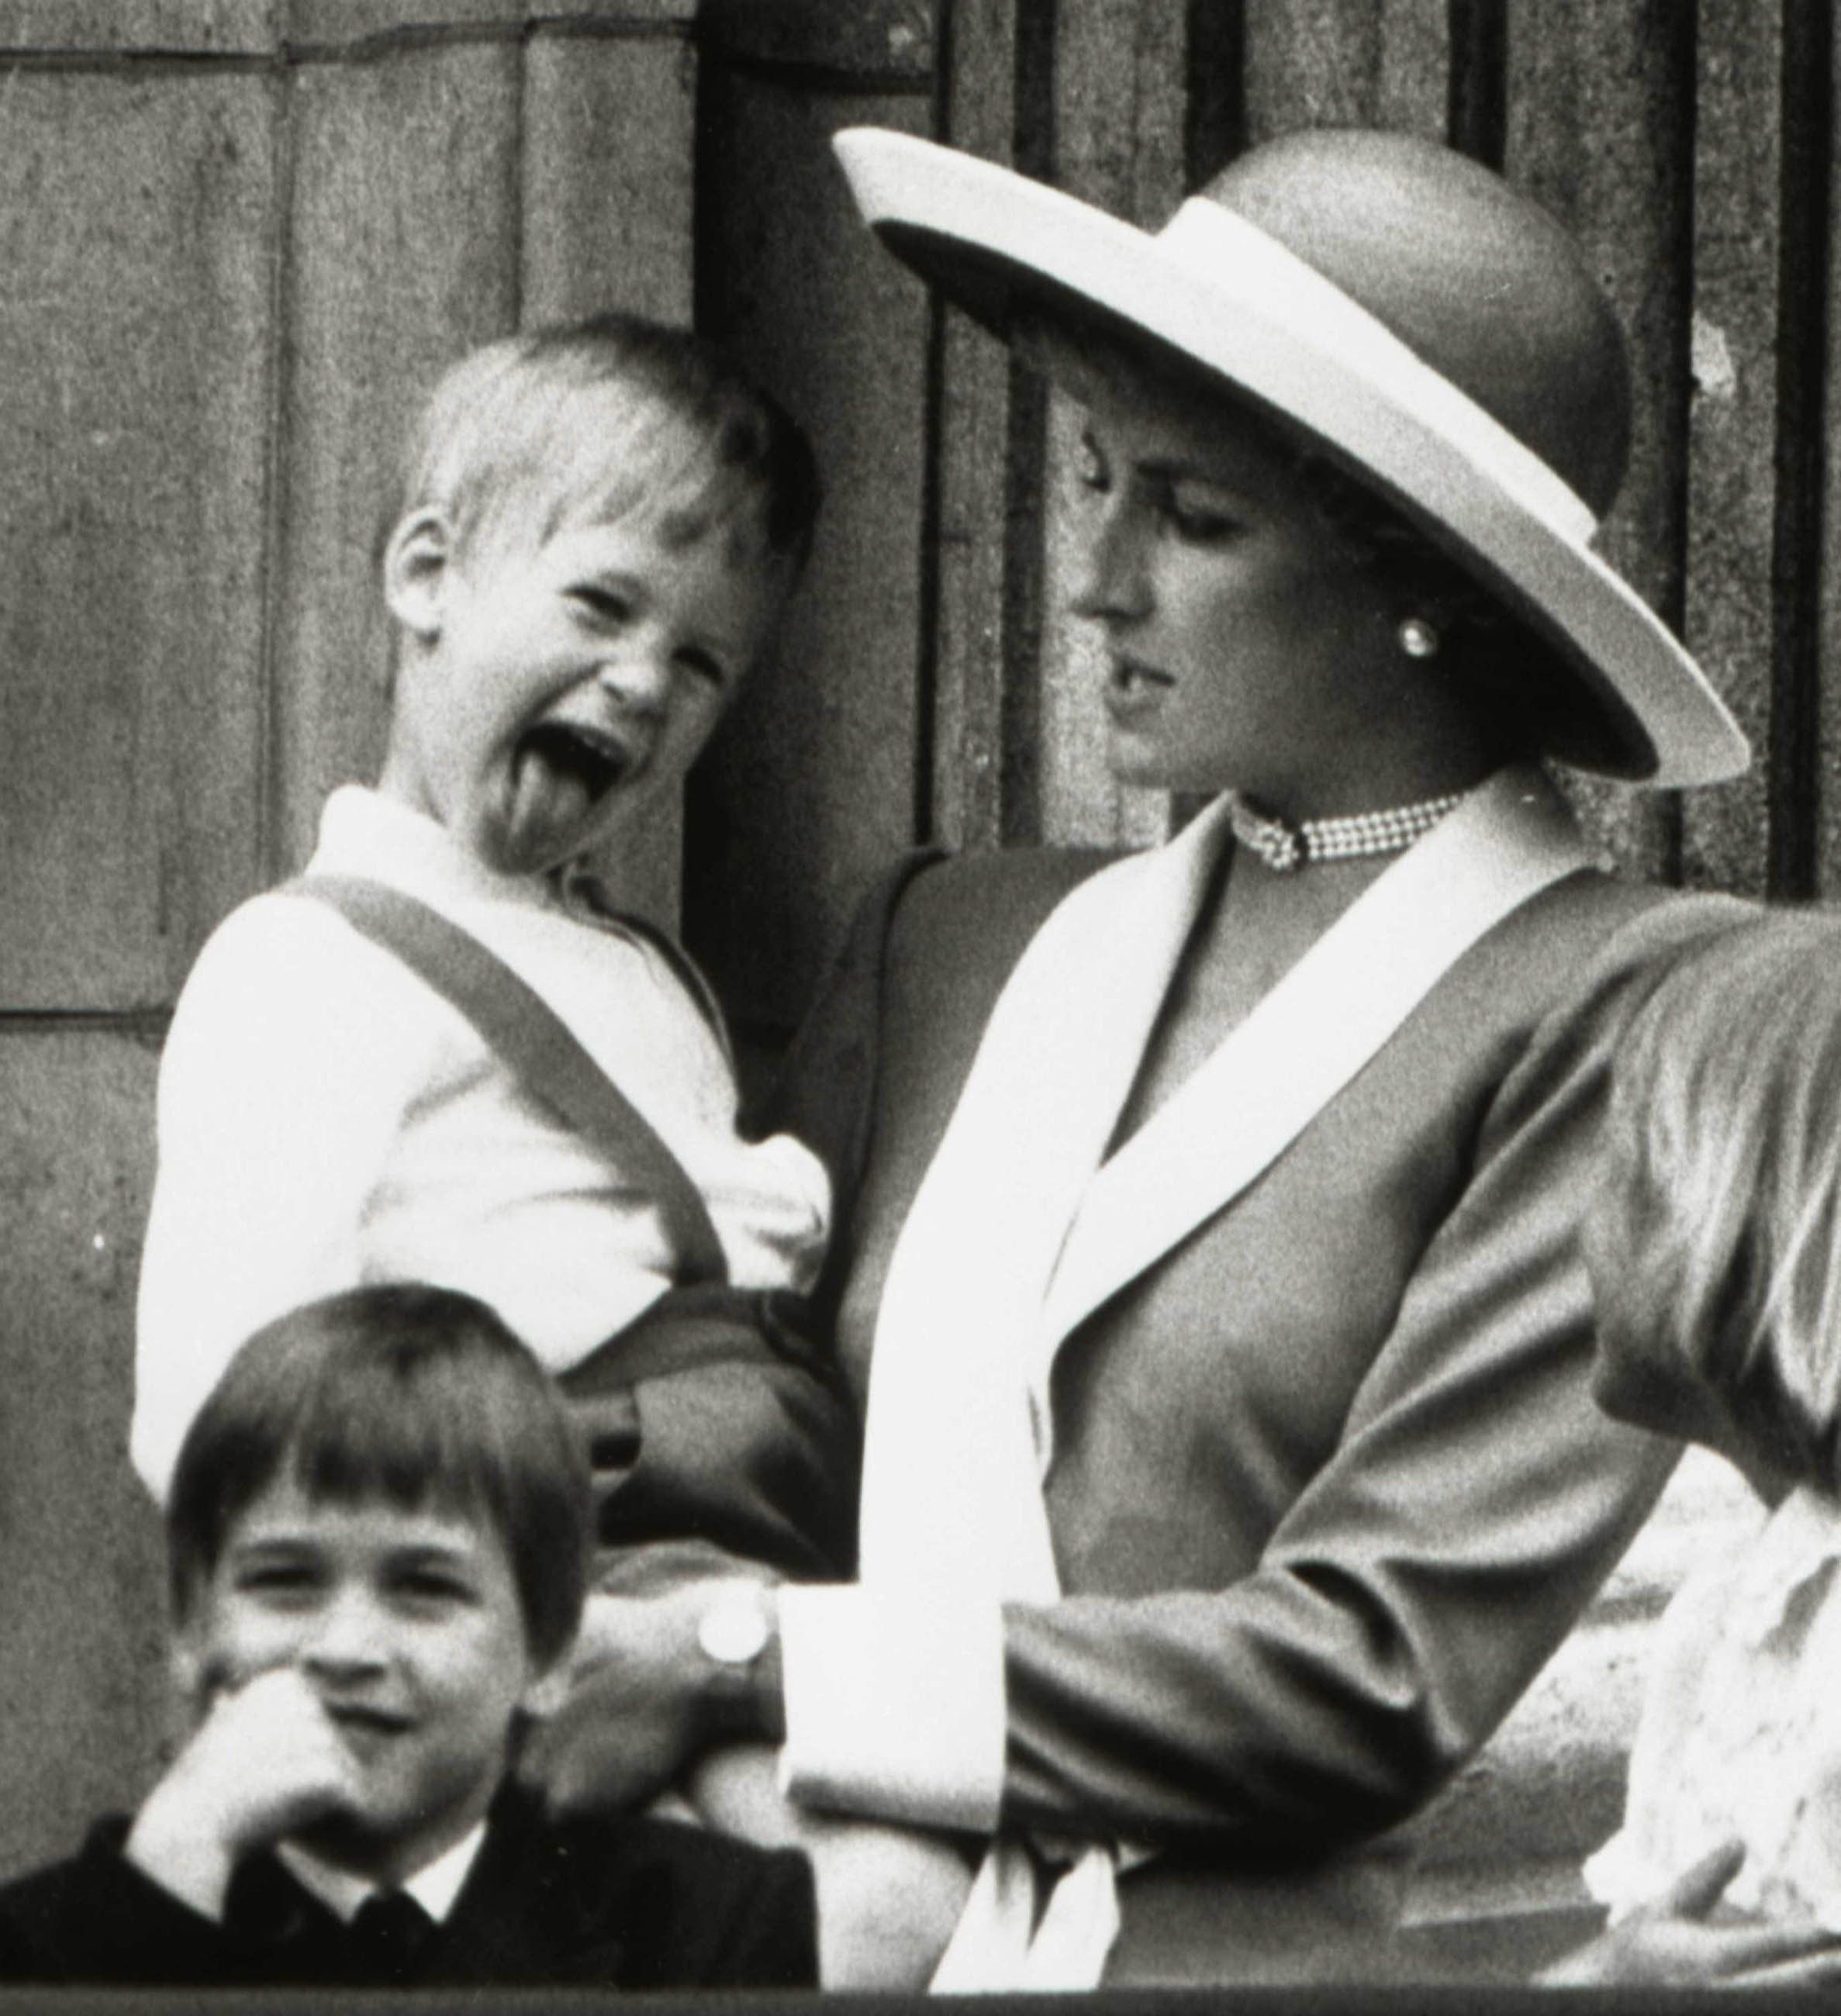 Prince Harry with his mother Princess Diana, who died in a car accident in